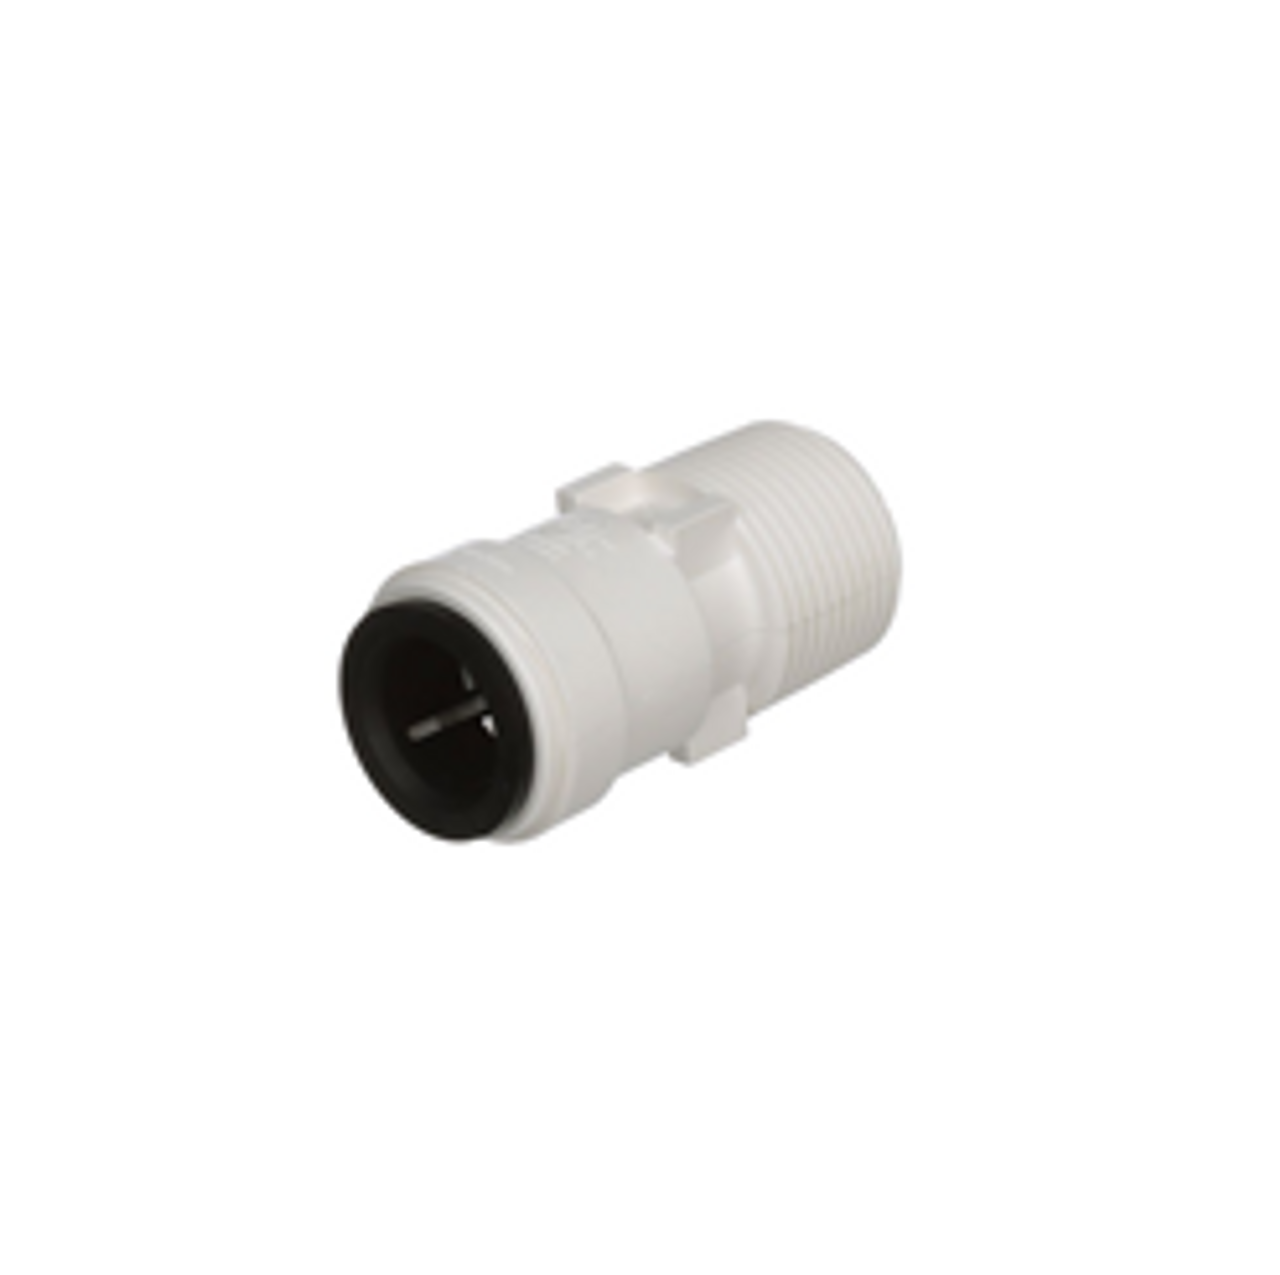 """½"""" CTS x ¾"""" MPT adapter 3501-1012"""